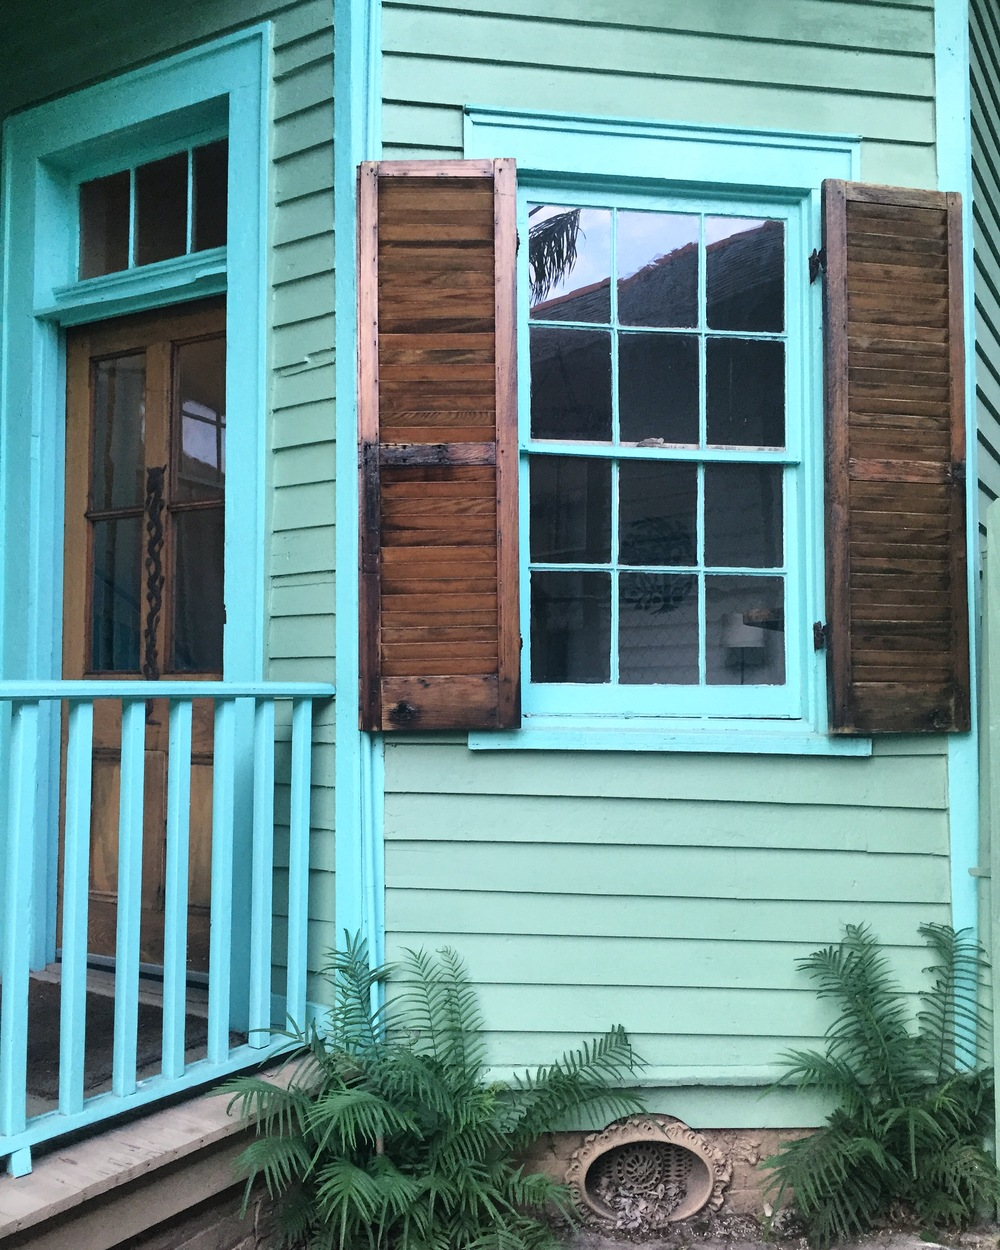 our super turquoise Airbnb in Nola